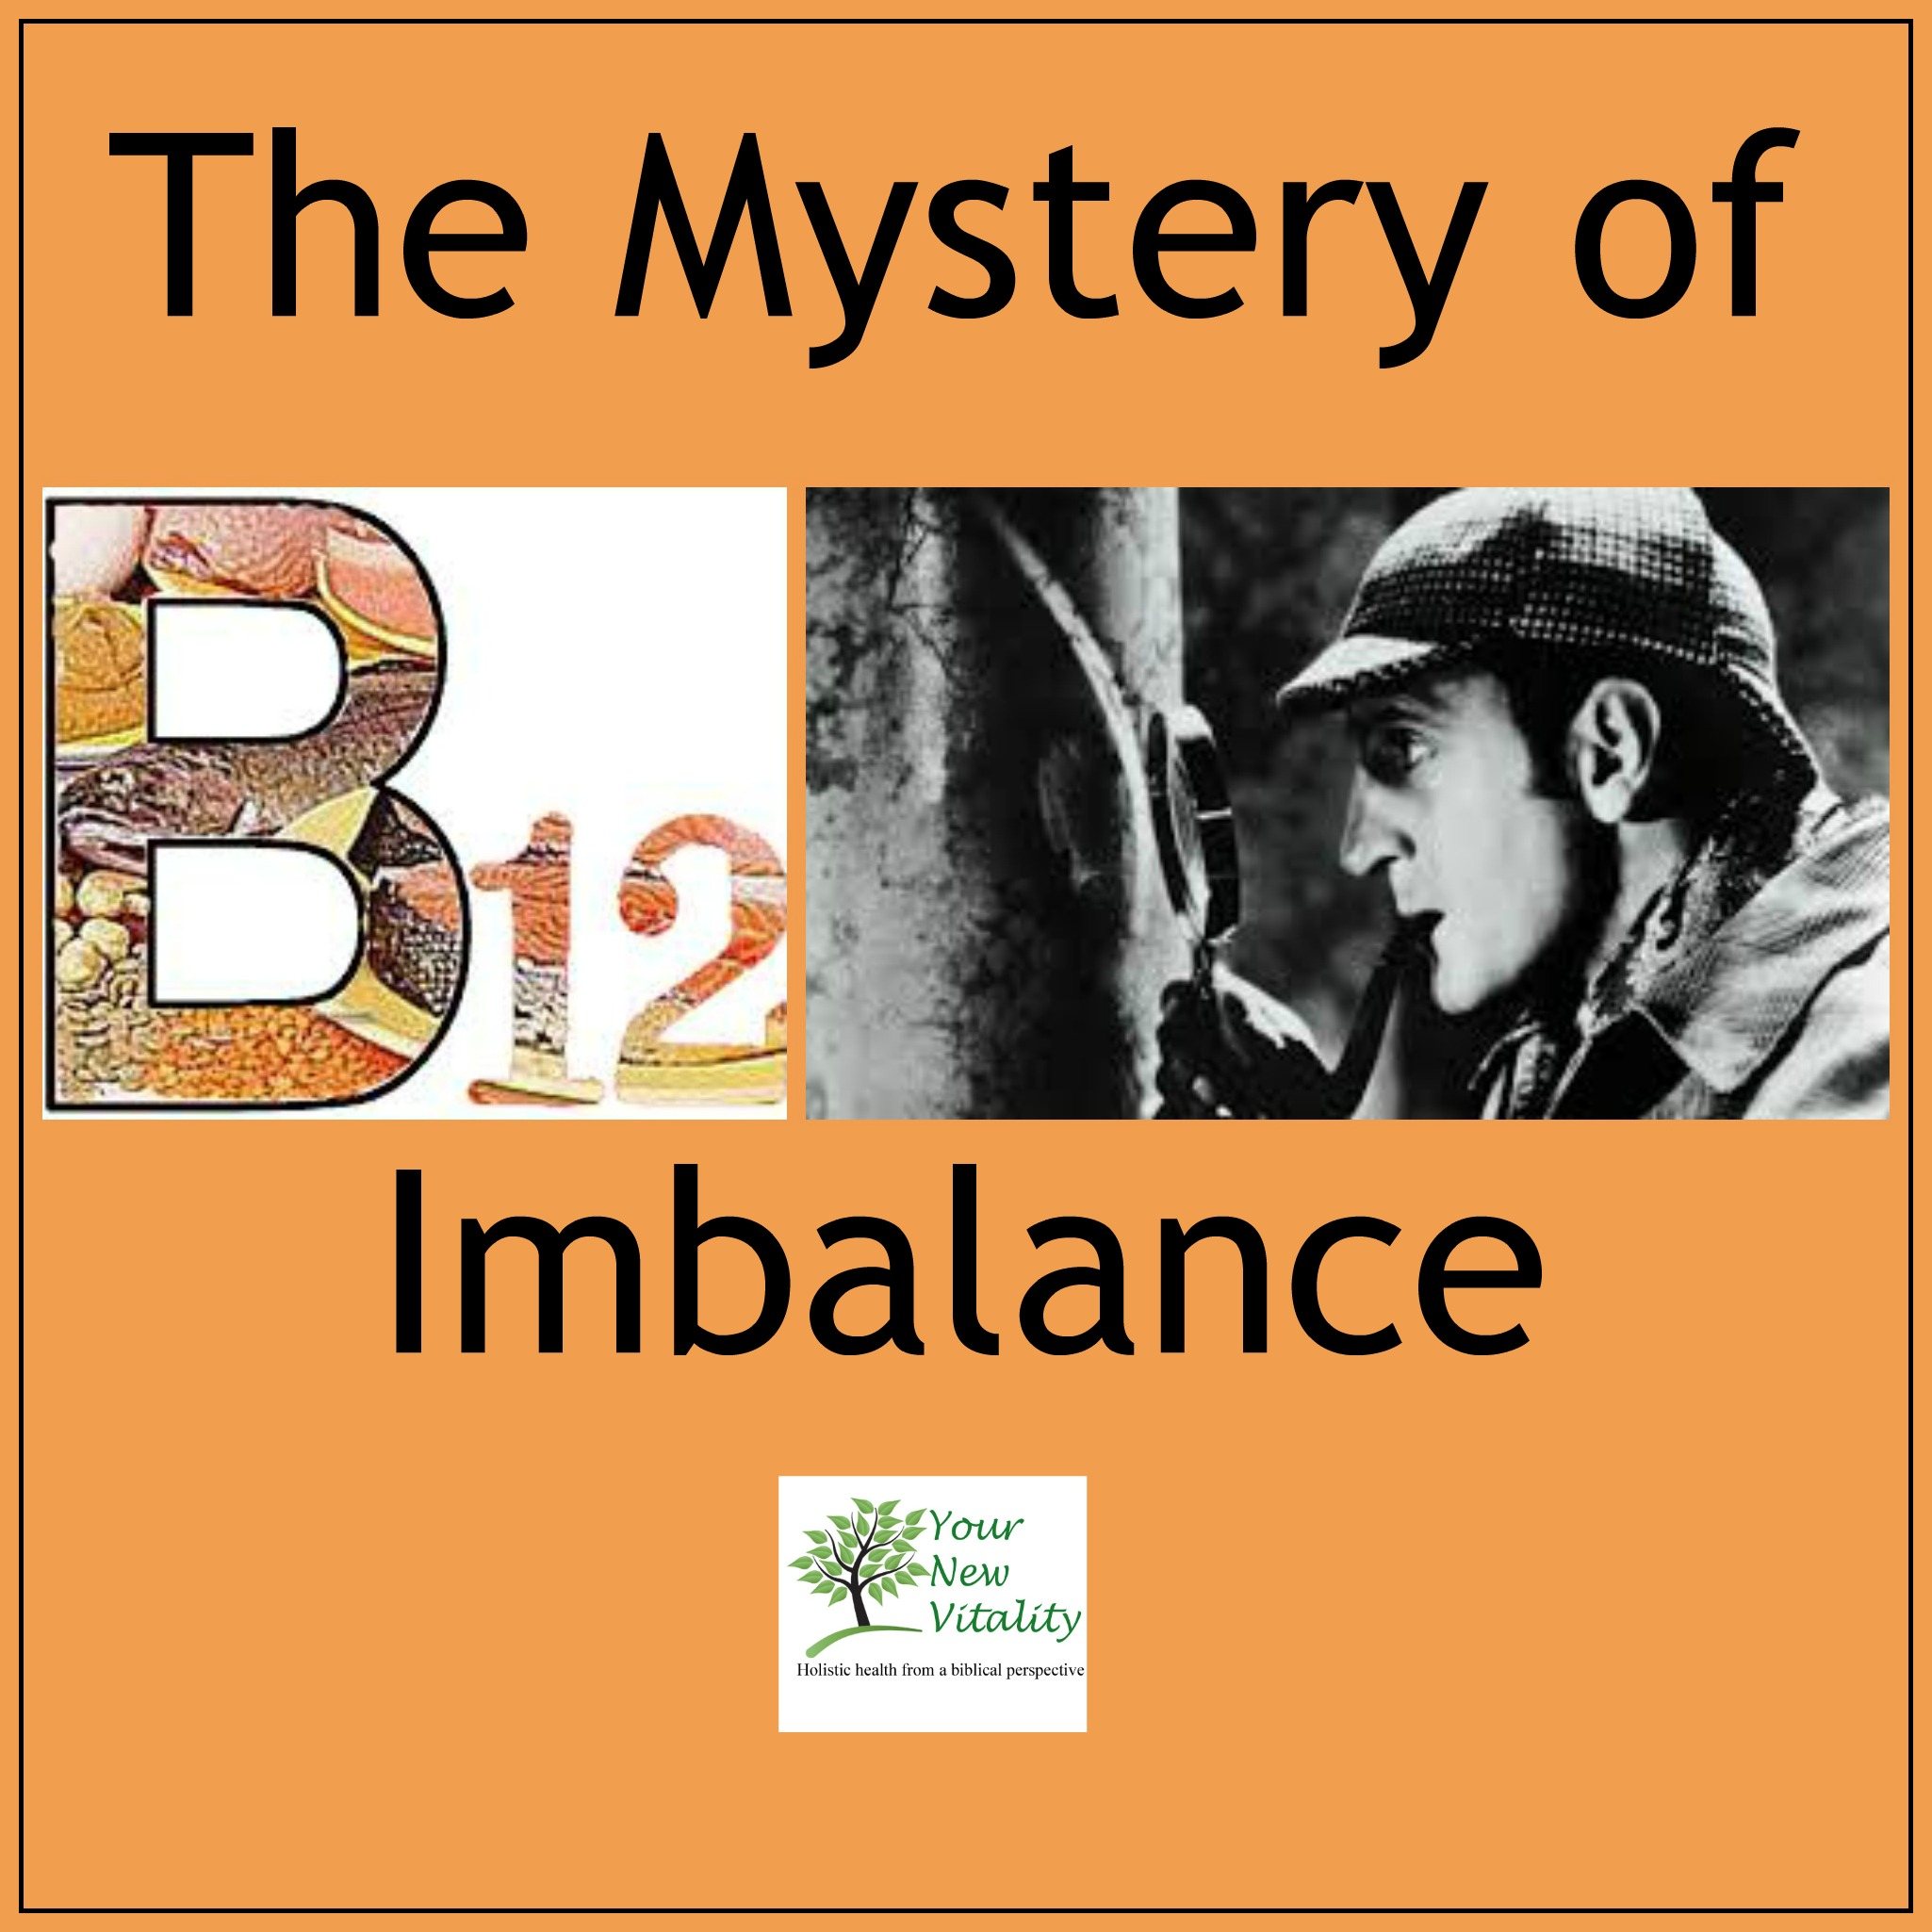 the mystery of B12 imbalance2